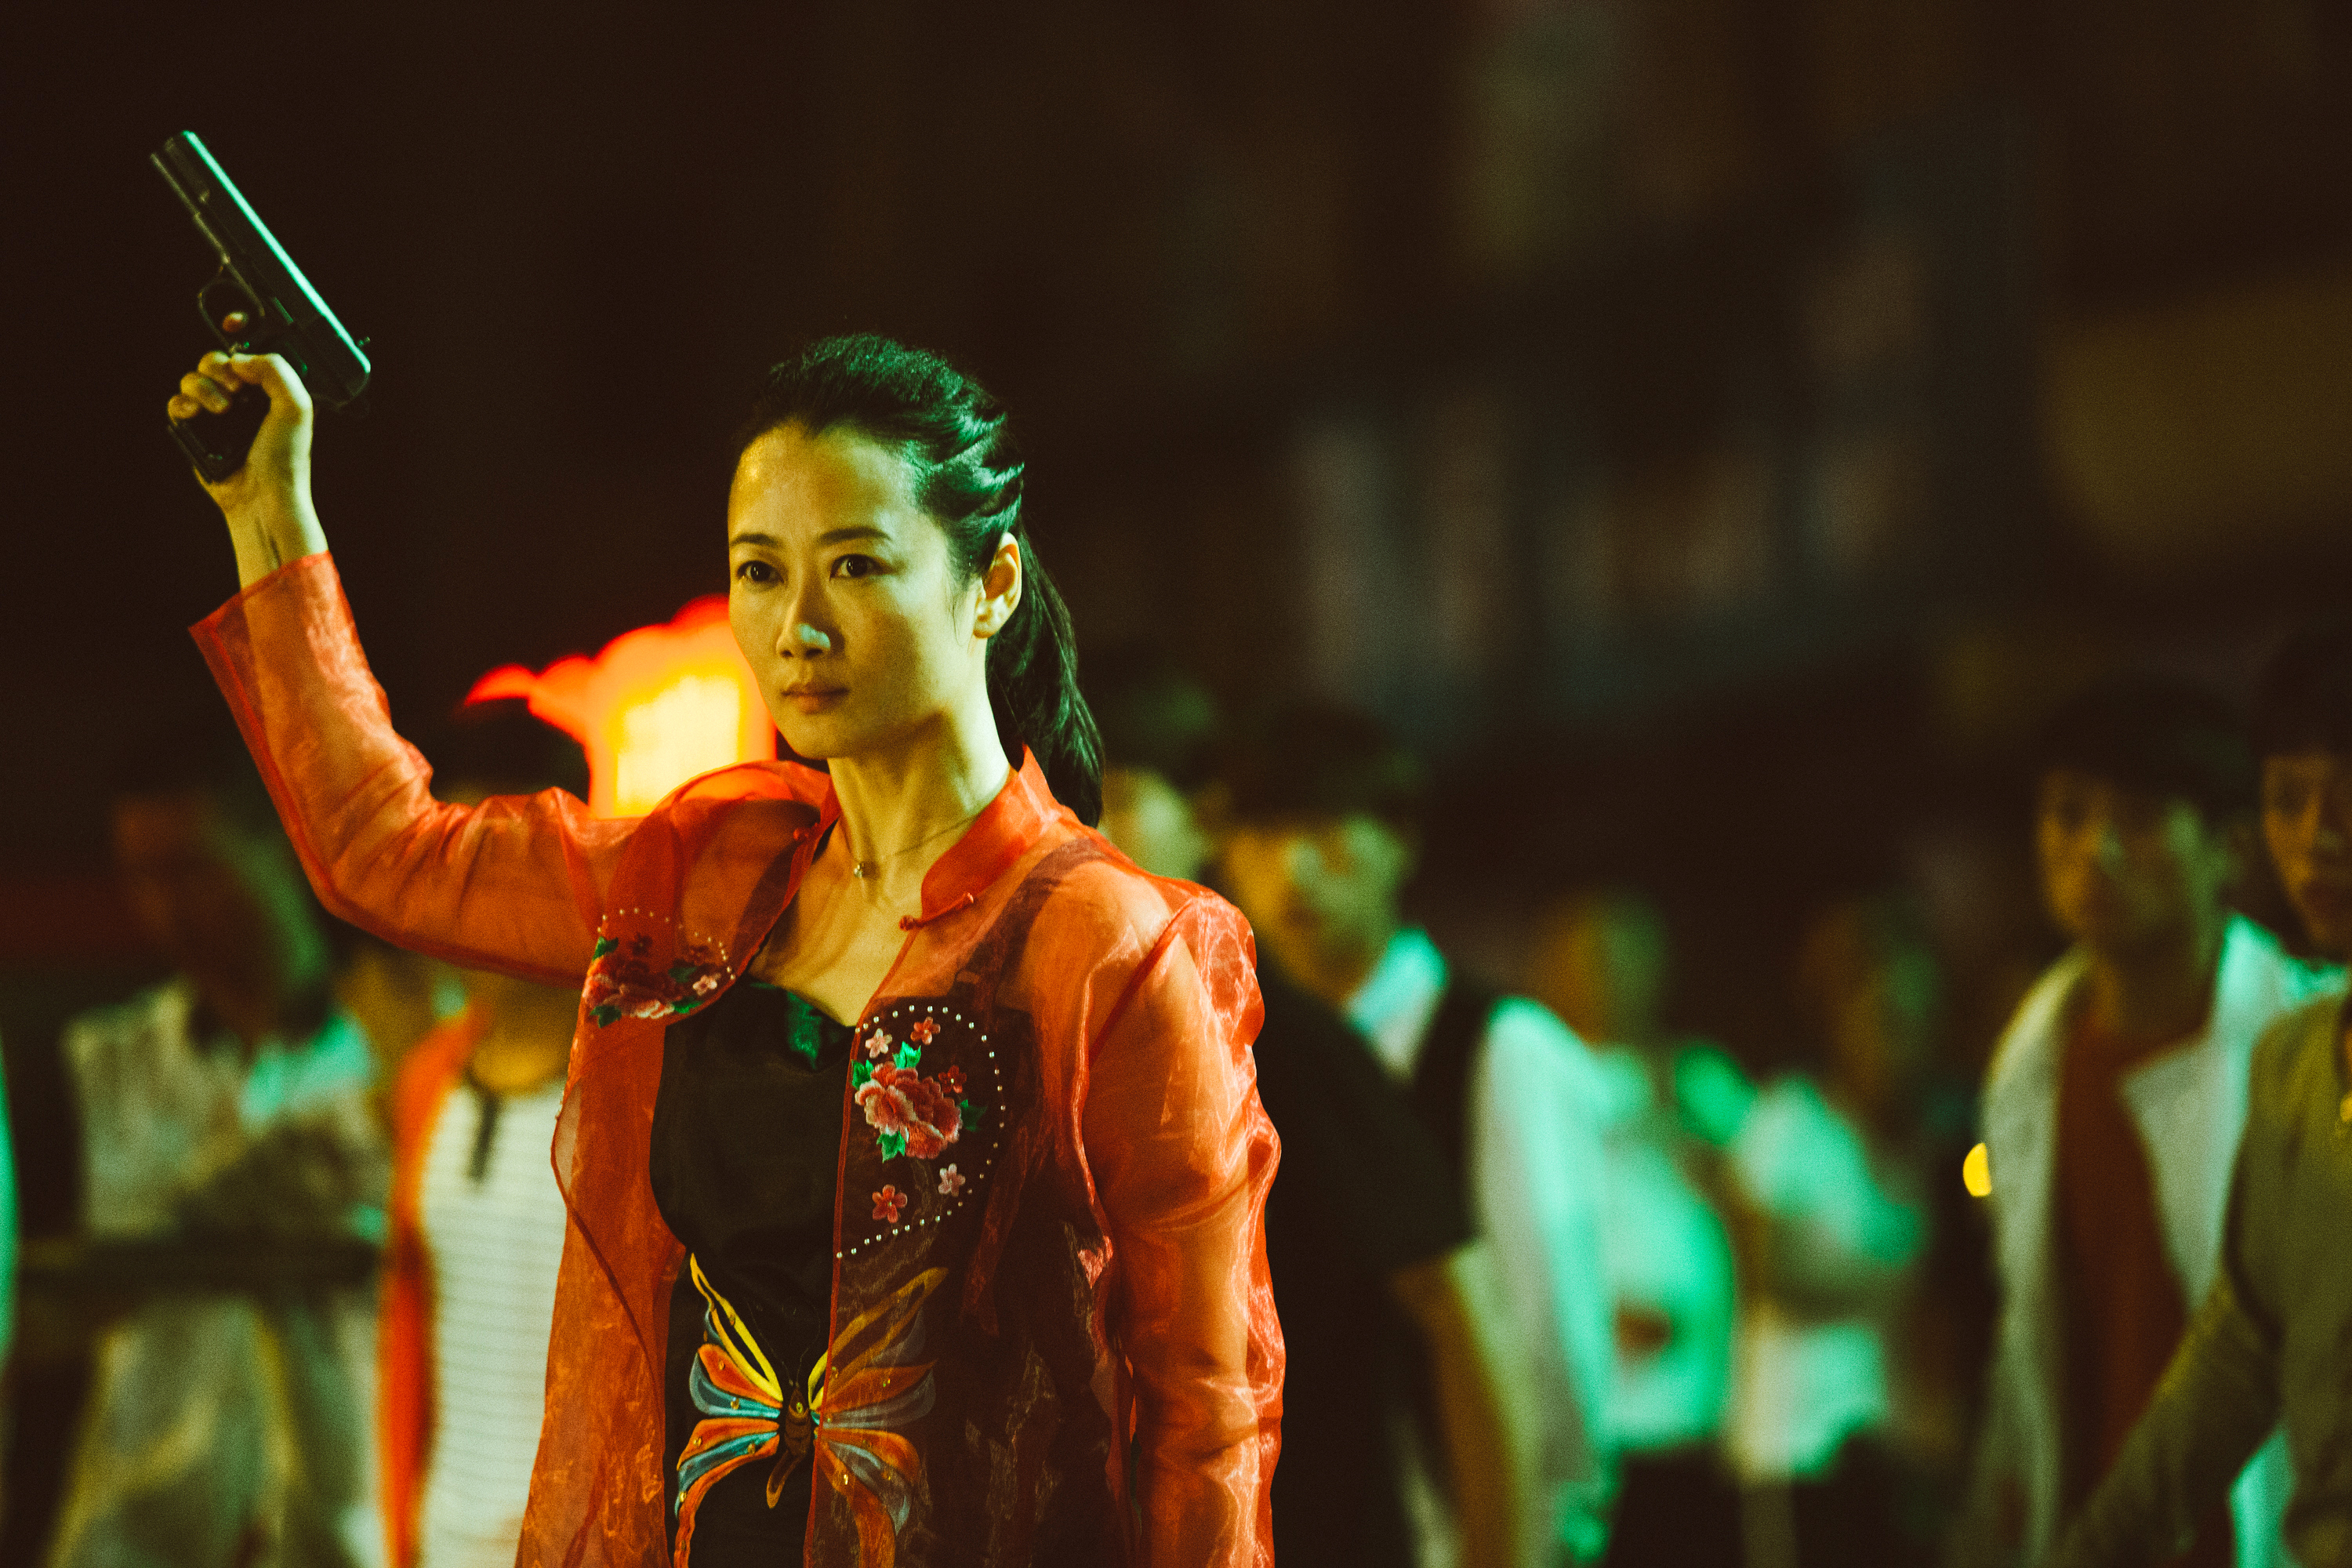 Ash is Purest White: Scene Image 4